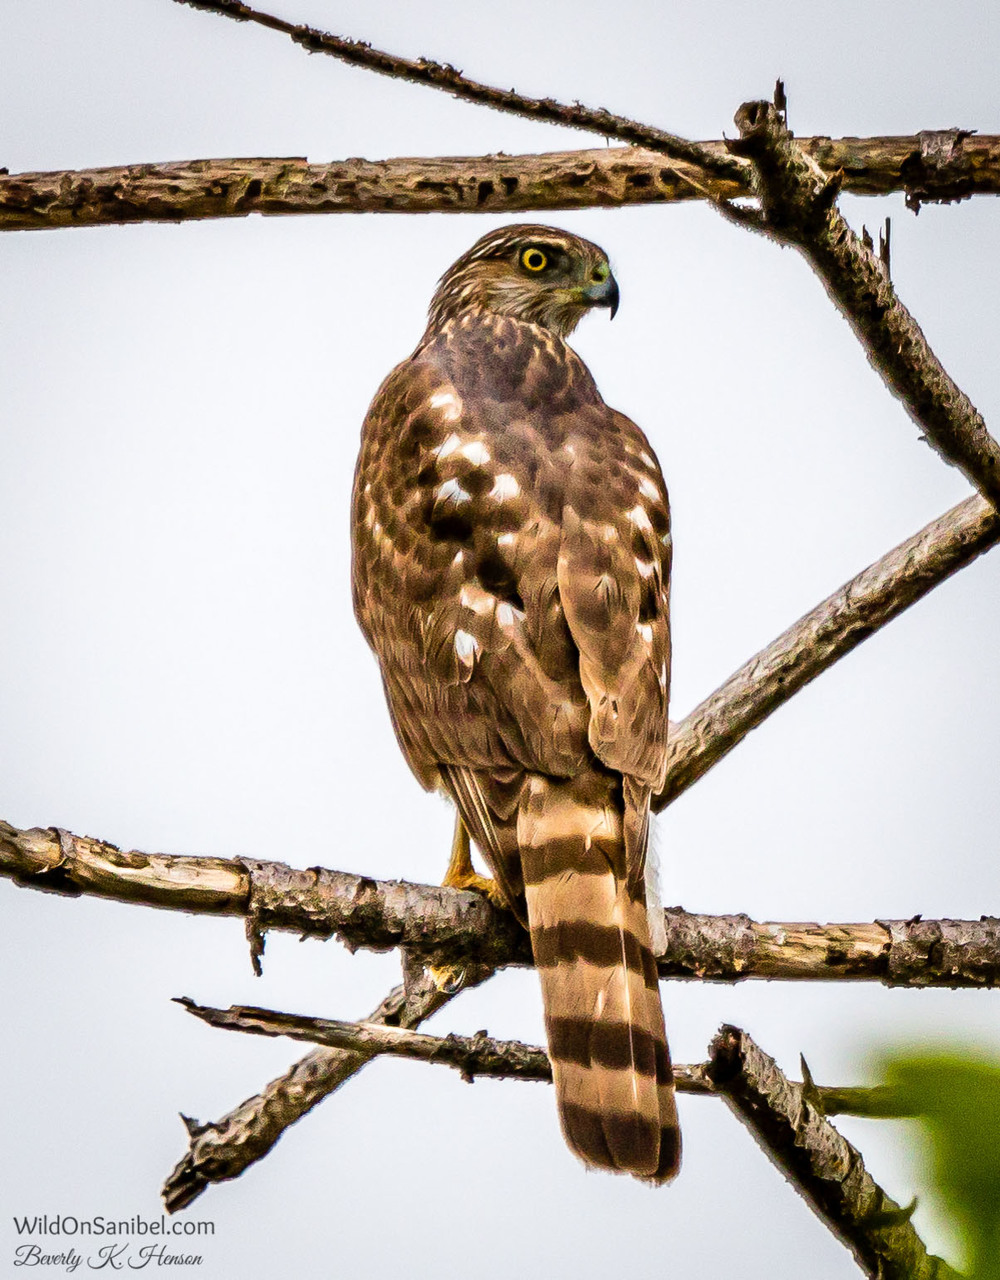 Saw this hawk sitting in a tree across the street from our home.